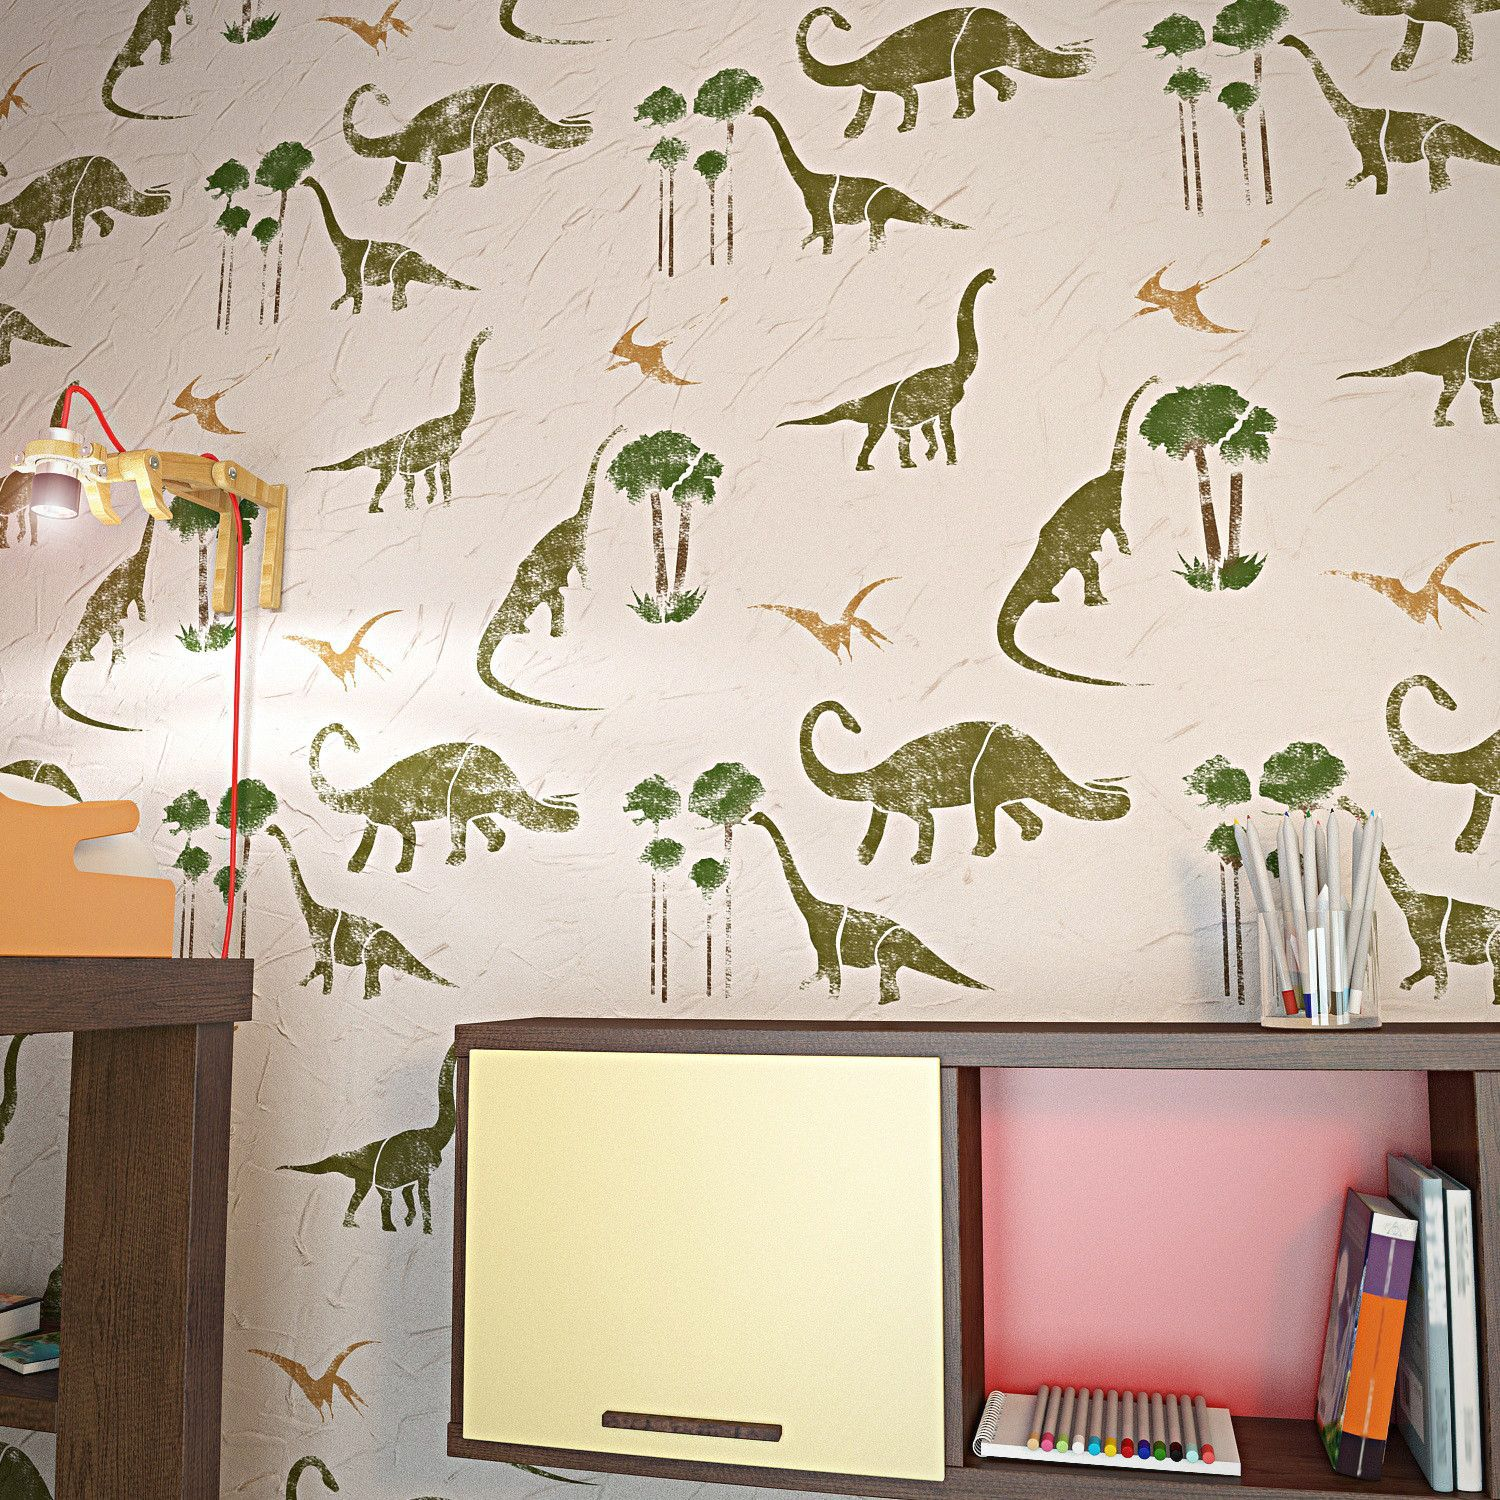 Dinosaurs wall stencil for kids room decor nursery wall dinosaurs wall stencil for kids room decor nursery wall stencils amipublicfo Image collections